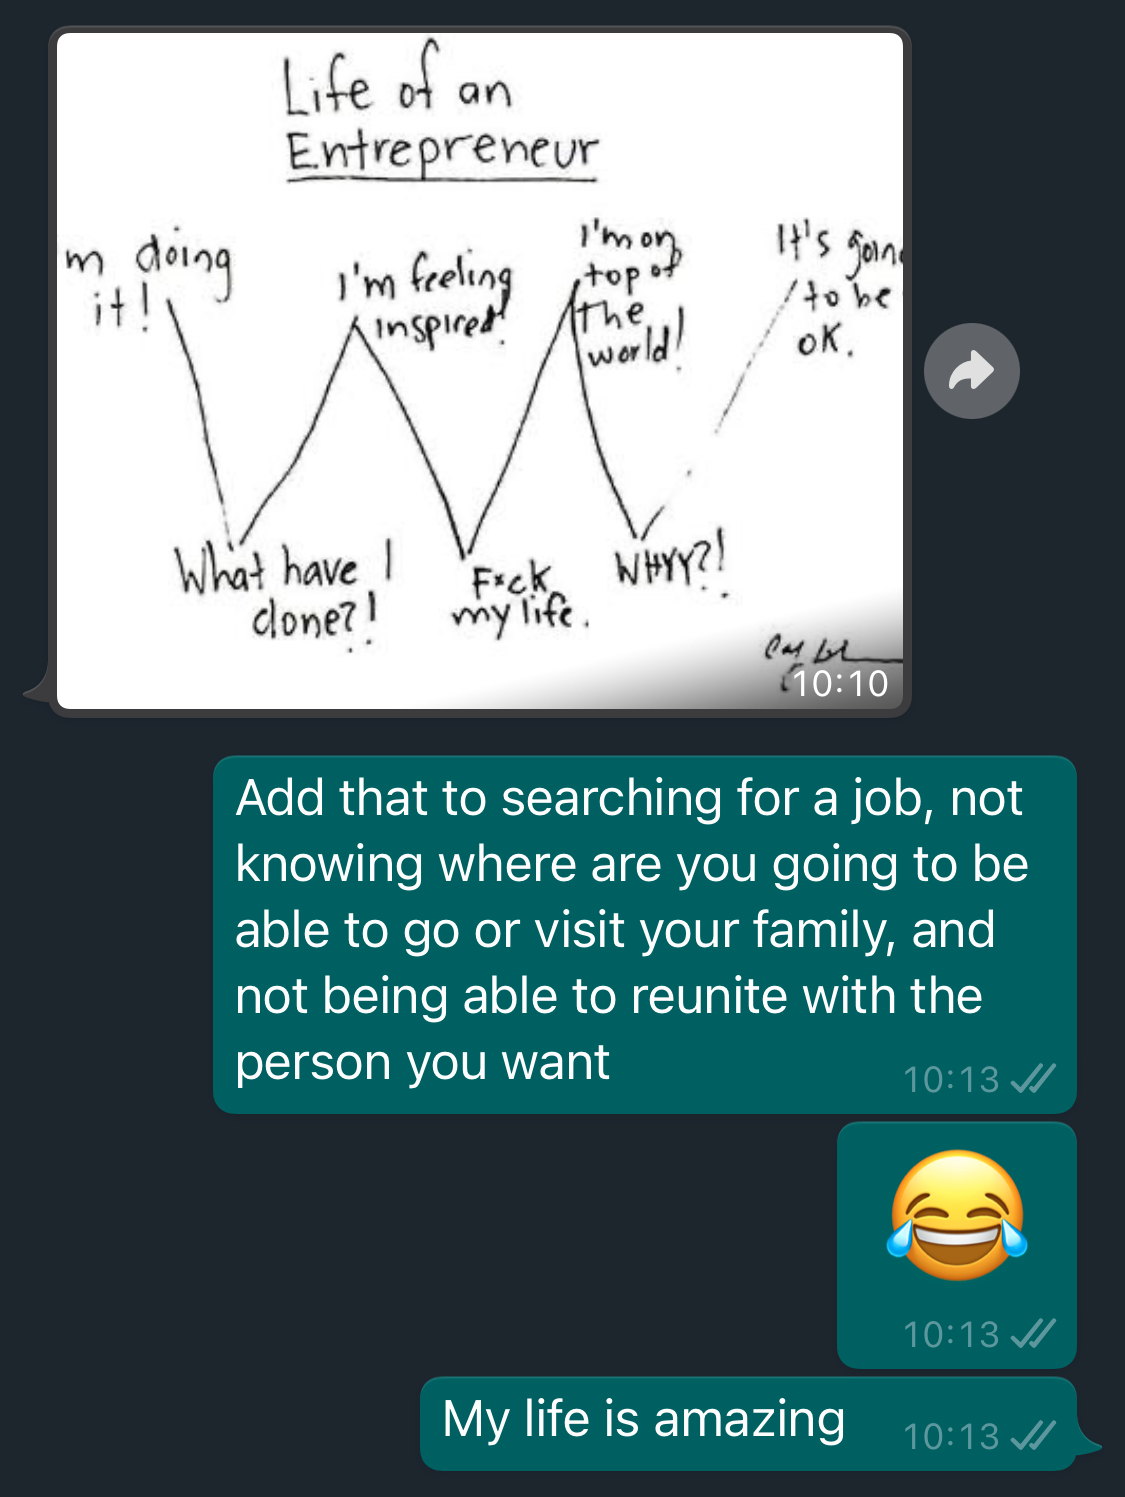 Add on top of that, getting a new client, have an existential crisis about your life and a very hard time sentimentally speaking. Fucking rollercoaster. My life is amazing 😂